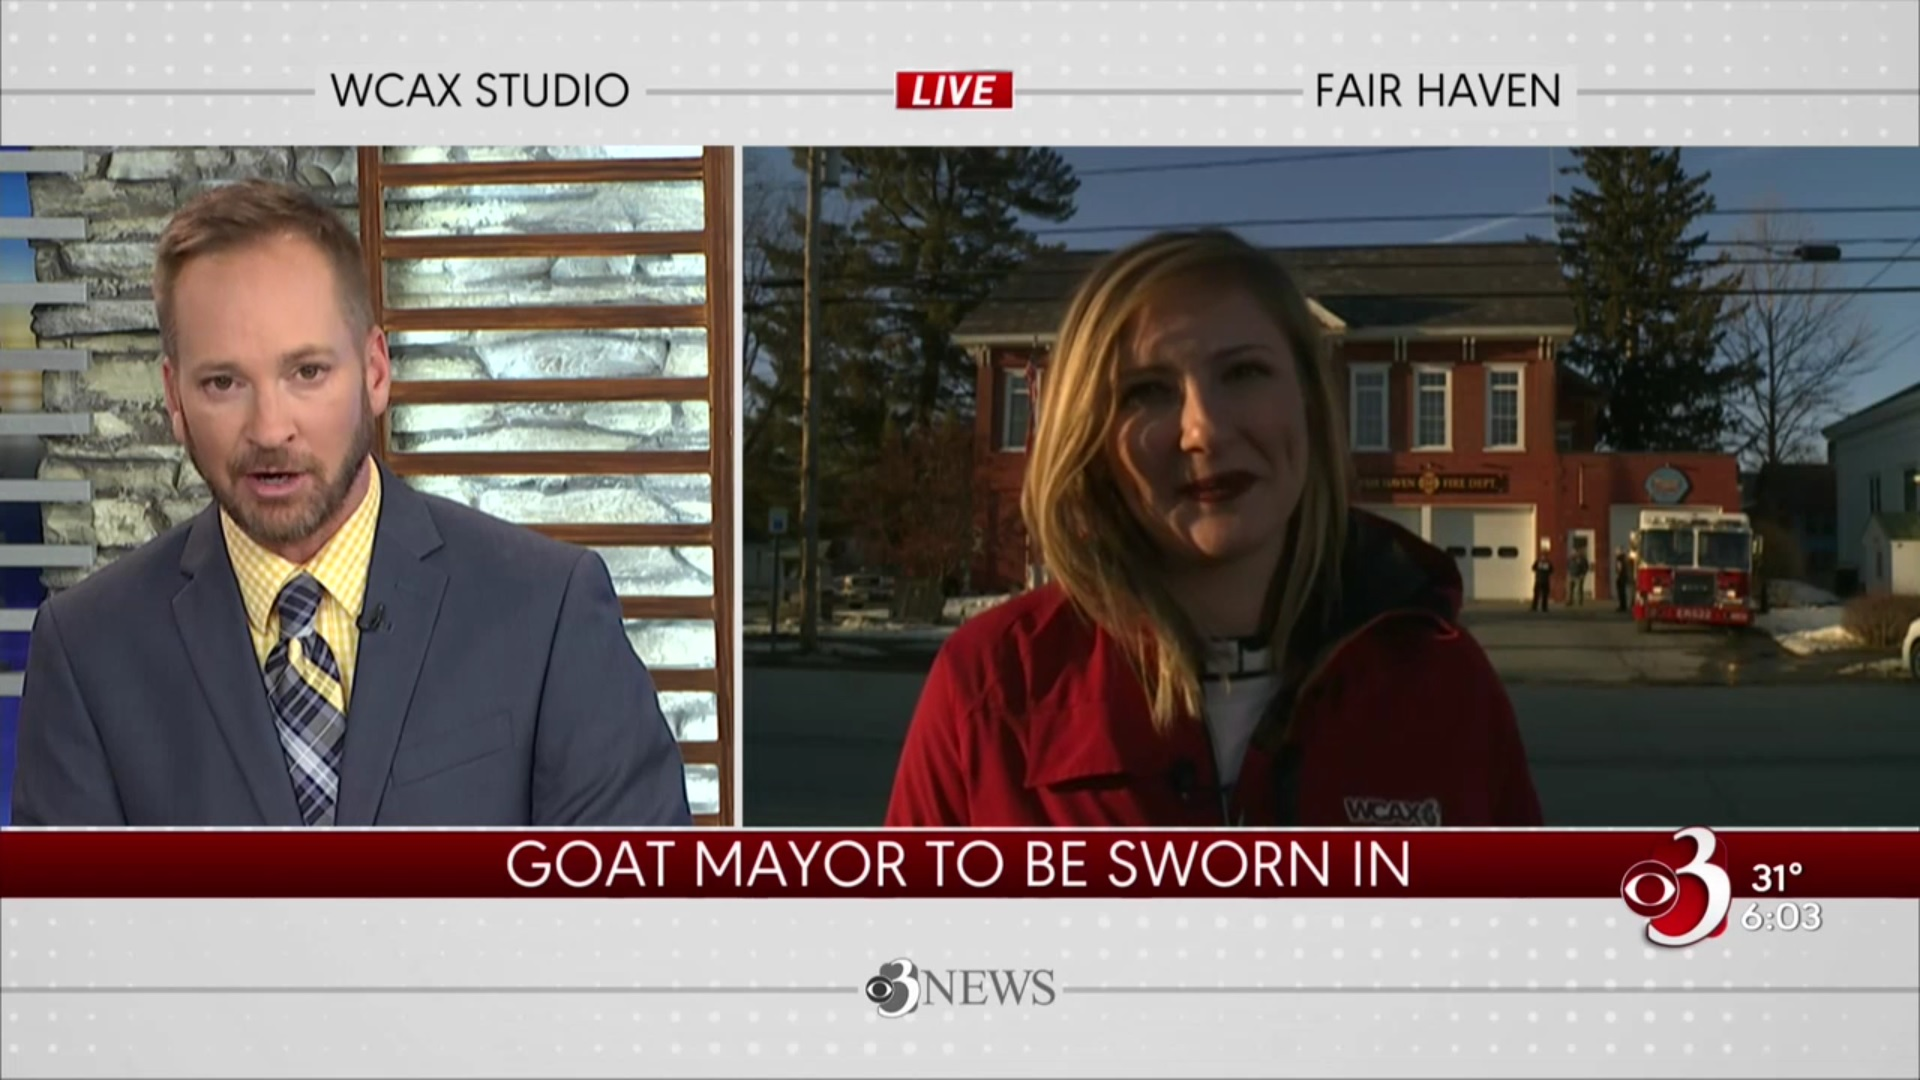 Goat Mayor To Be Sworn In